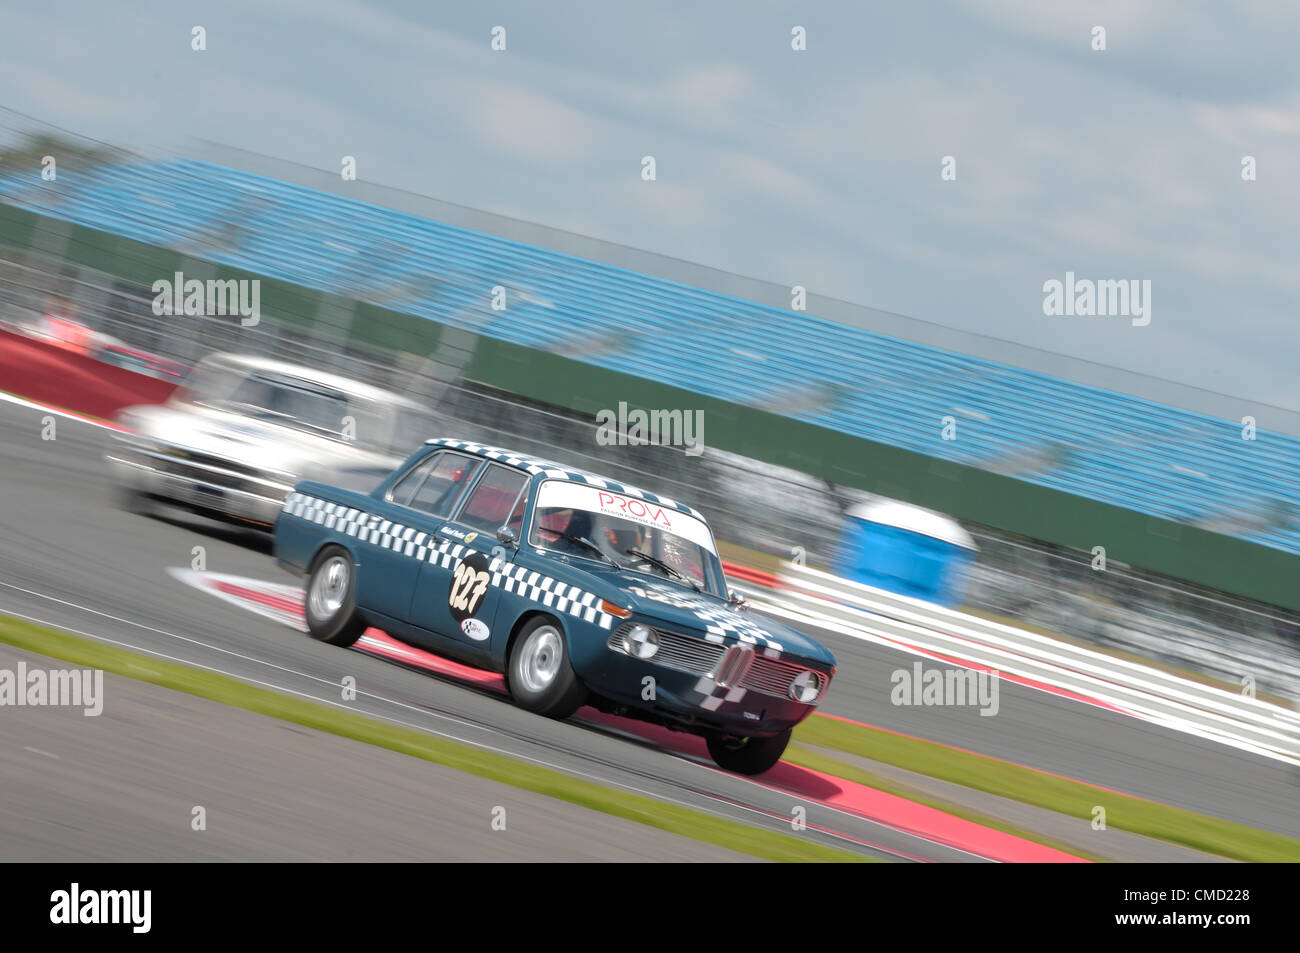 21st July 2012, Silverstone, UK  Richard Postins' BMW 1800Ti during the Alan Mann Trophy for under 2 Litre Touring Stock Photo